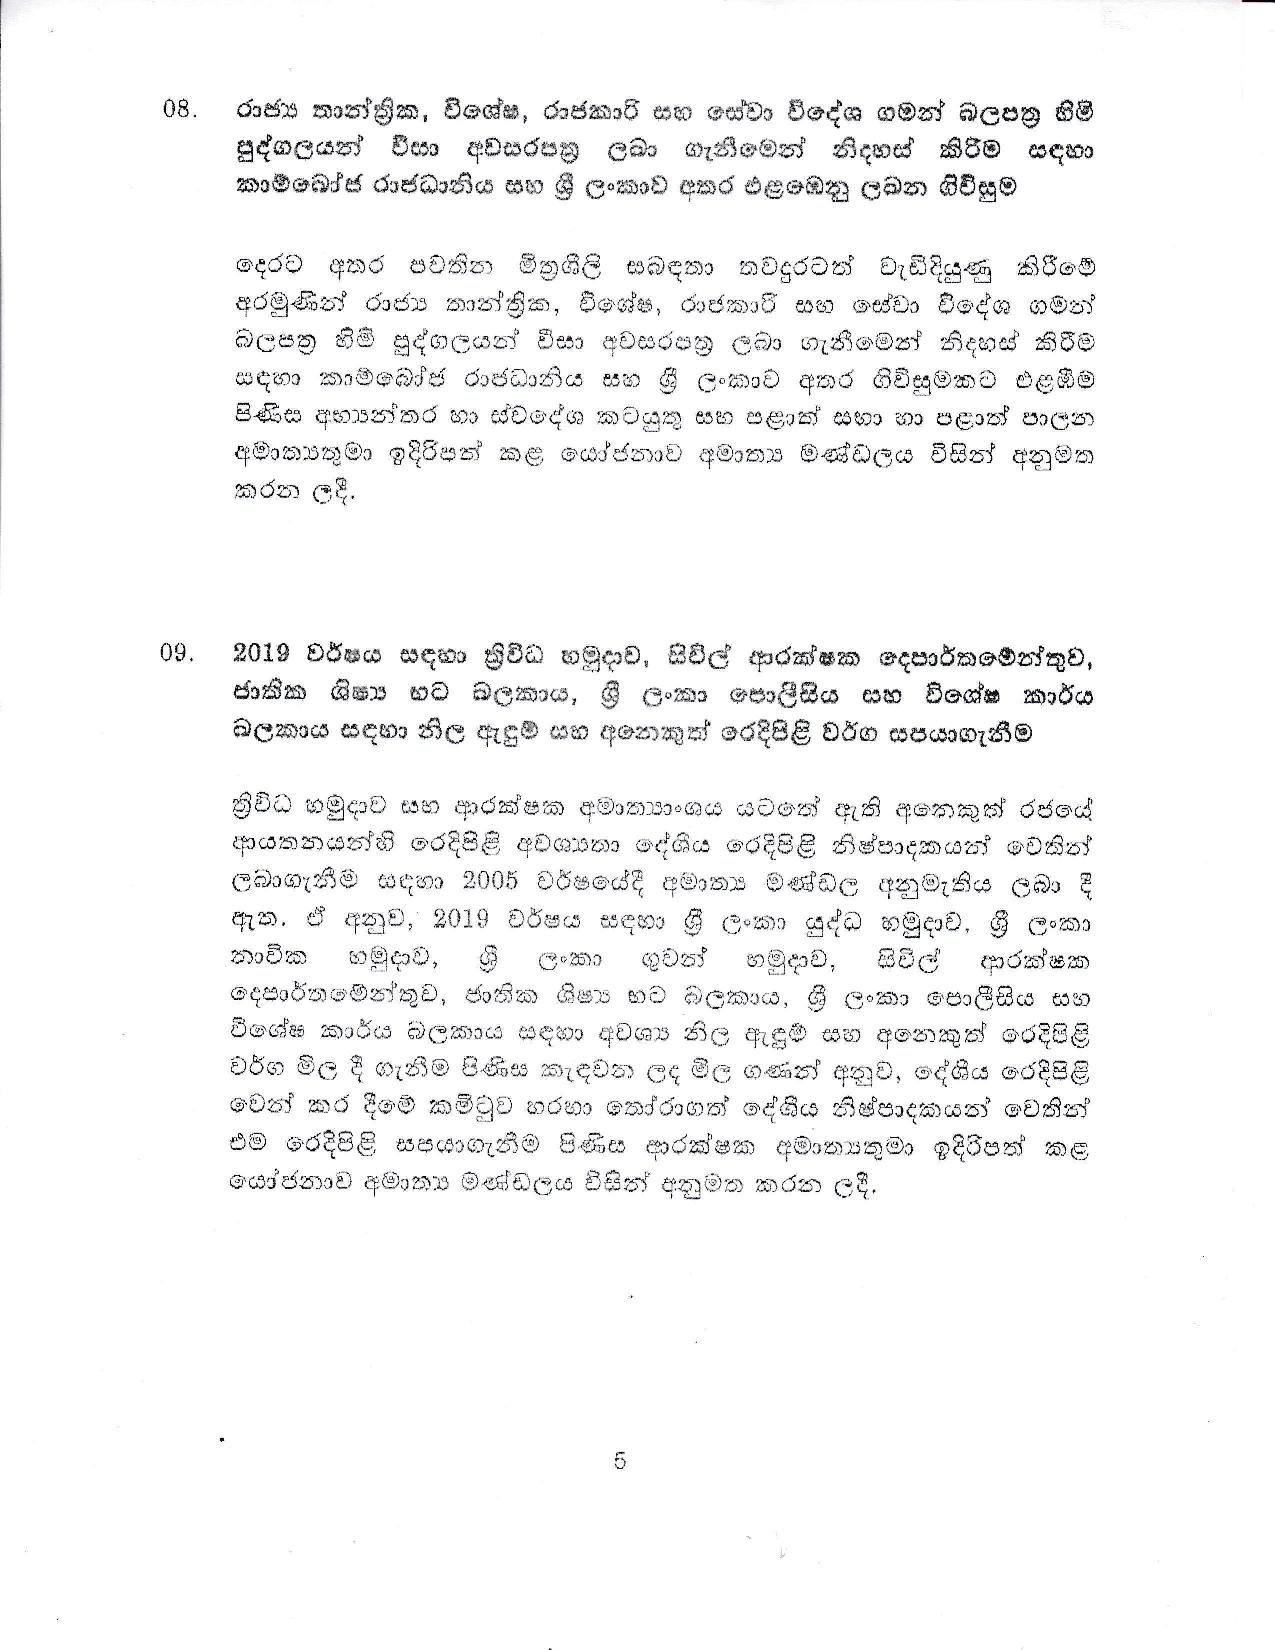 Cabinet Decision on 17.09.2019 Full document page 005